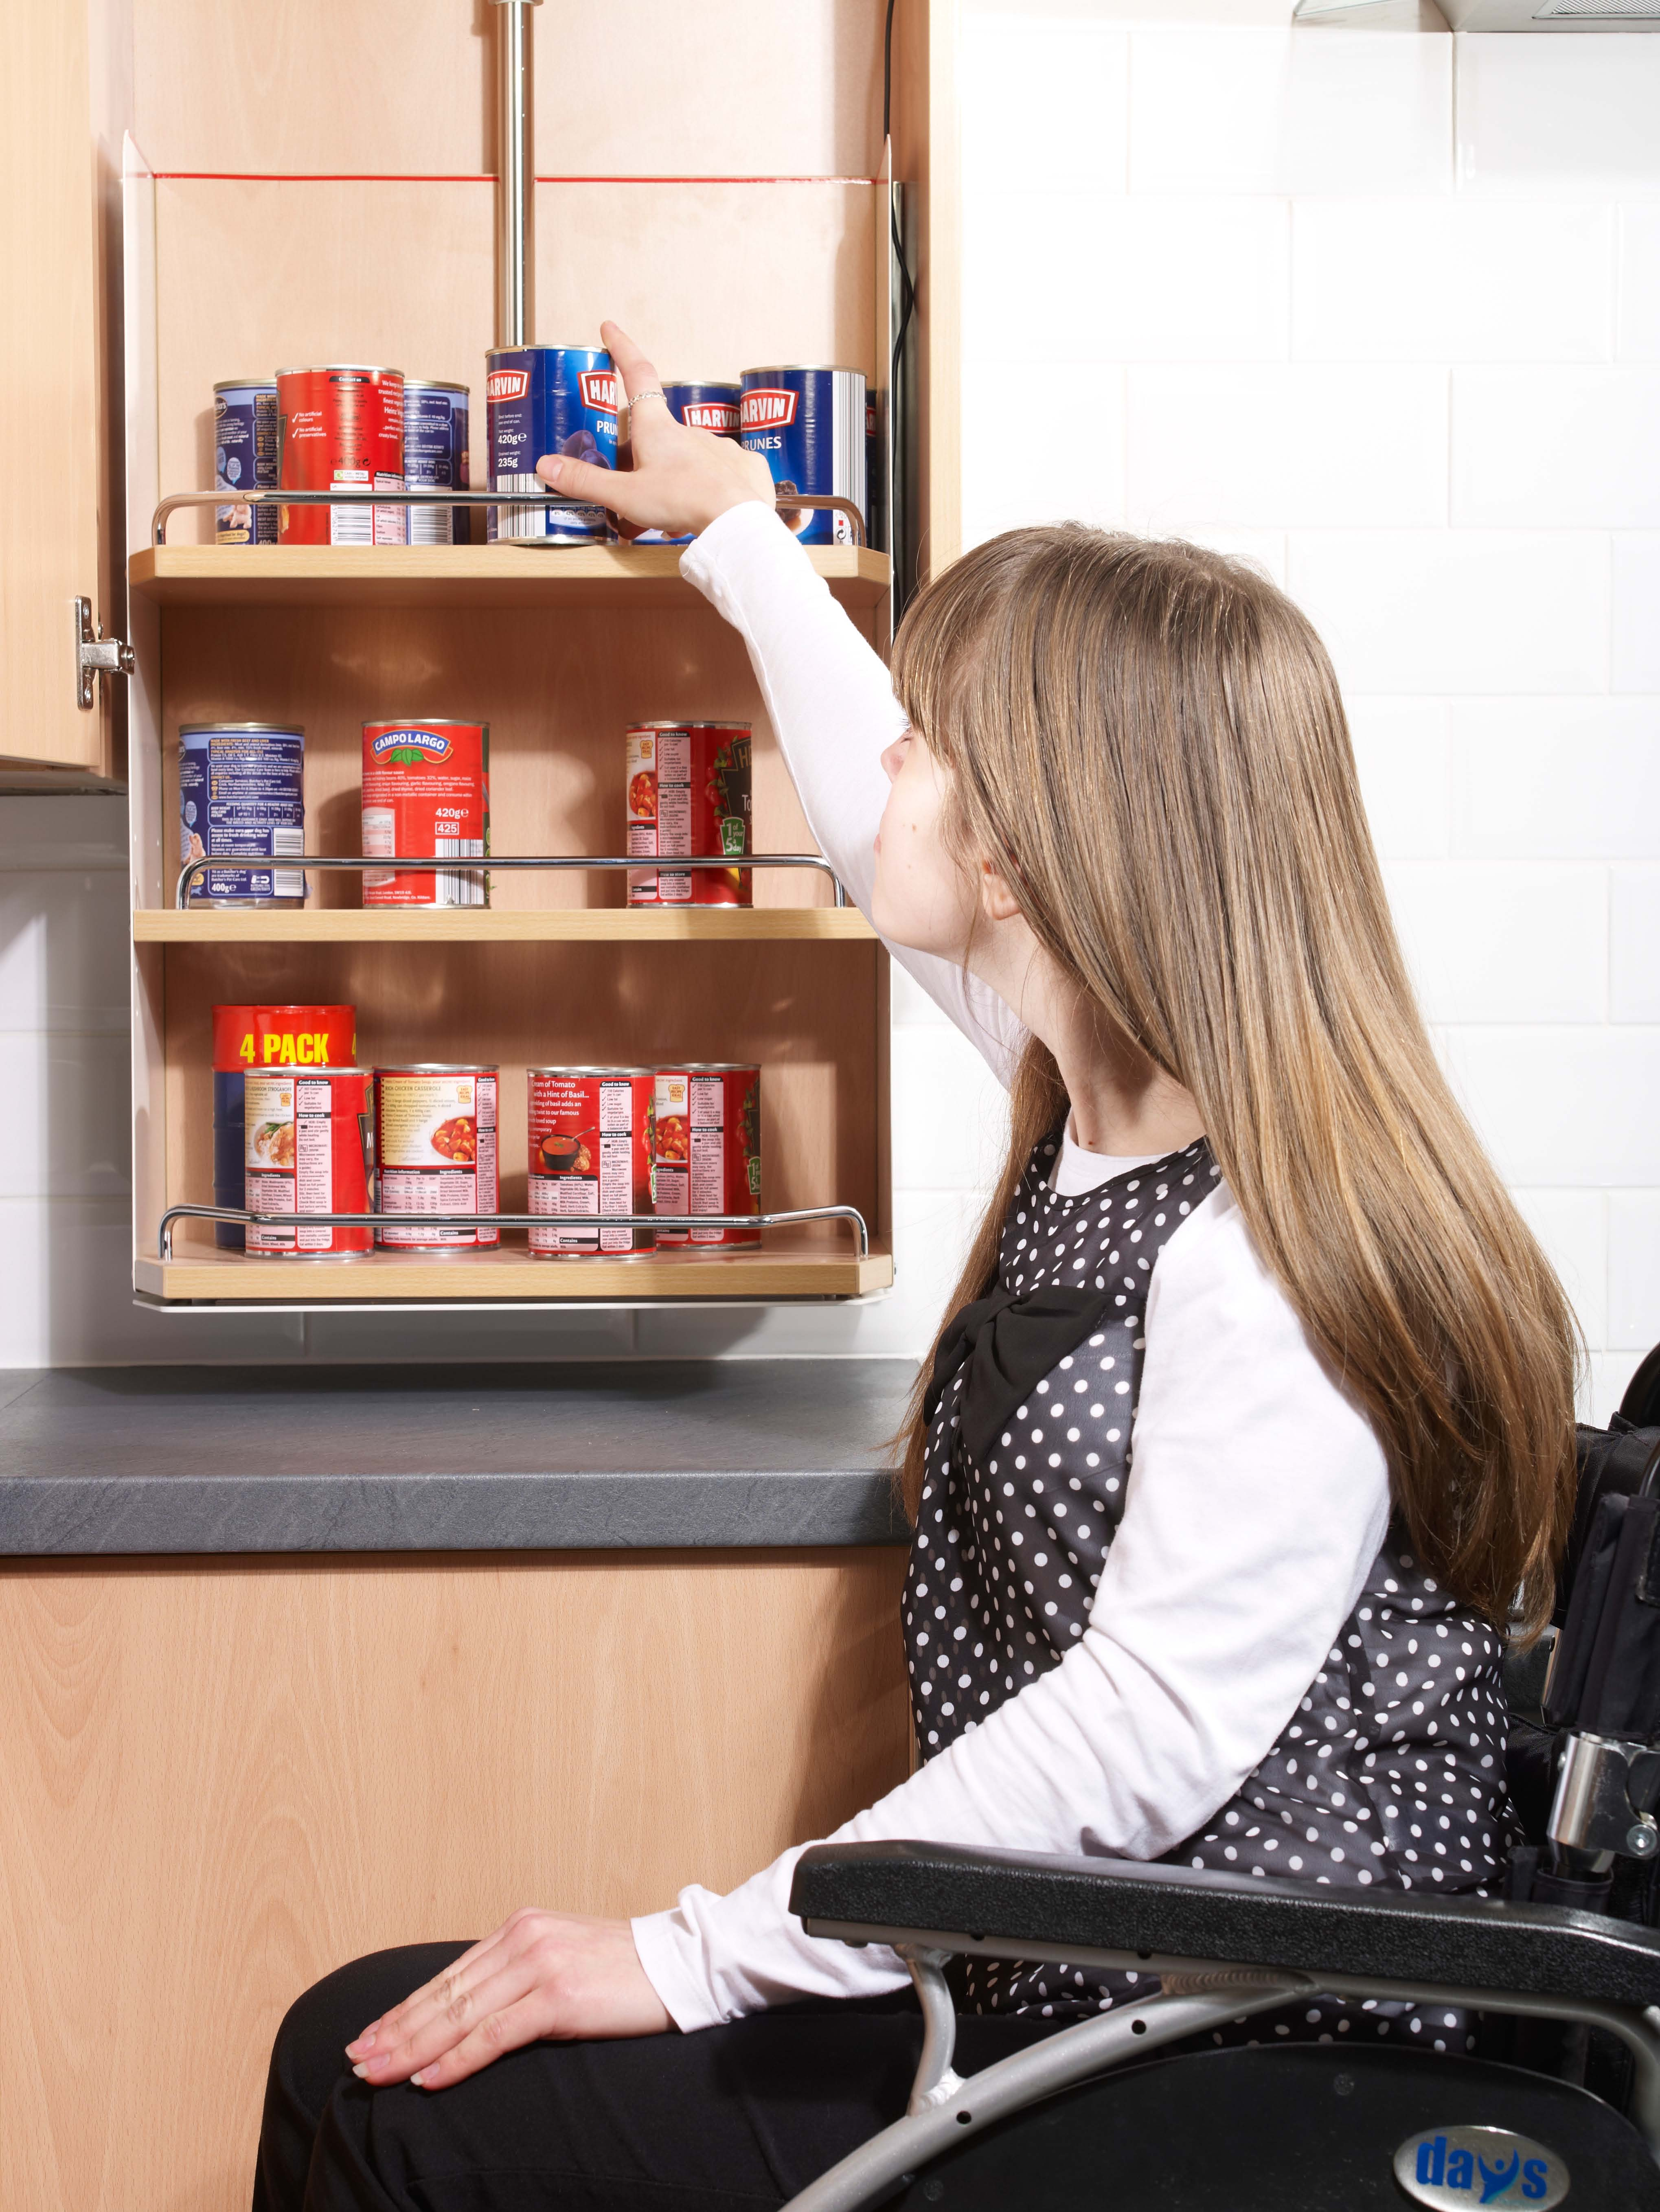 Kbsa accessible kitchens kbsa for Wheelchair accessible kitchen cabinets